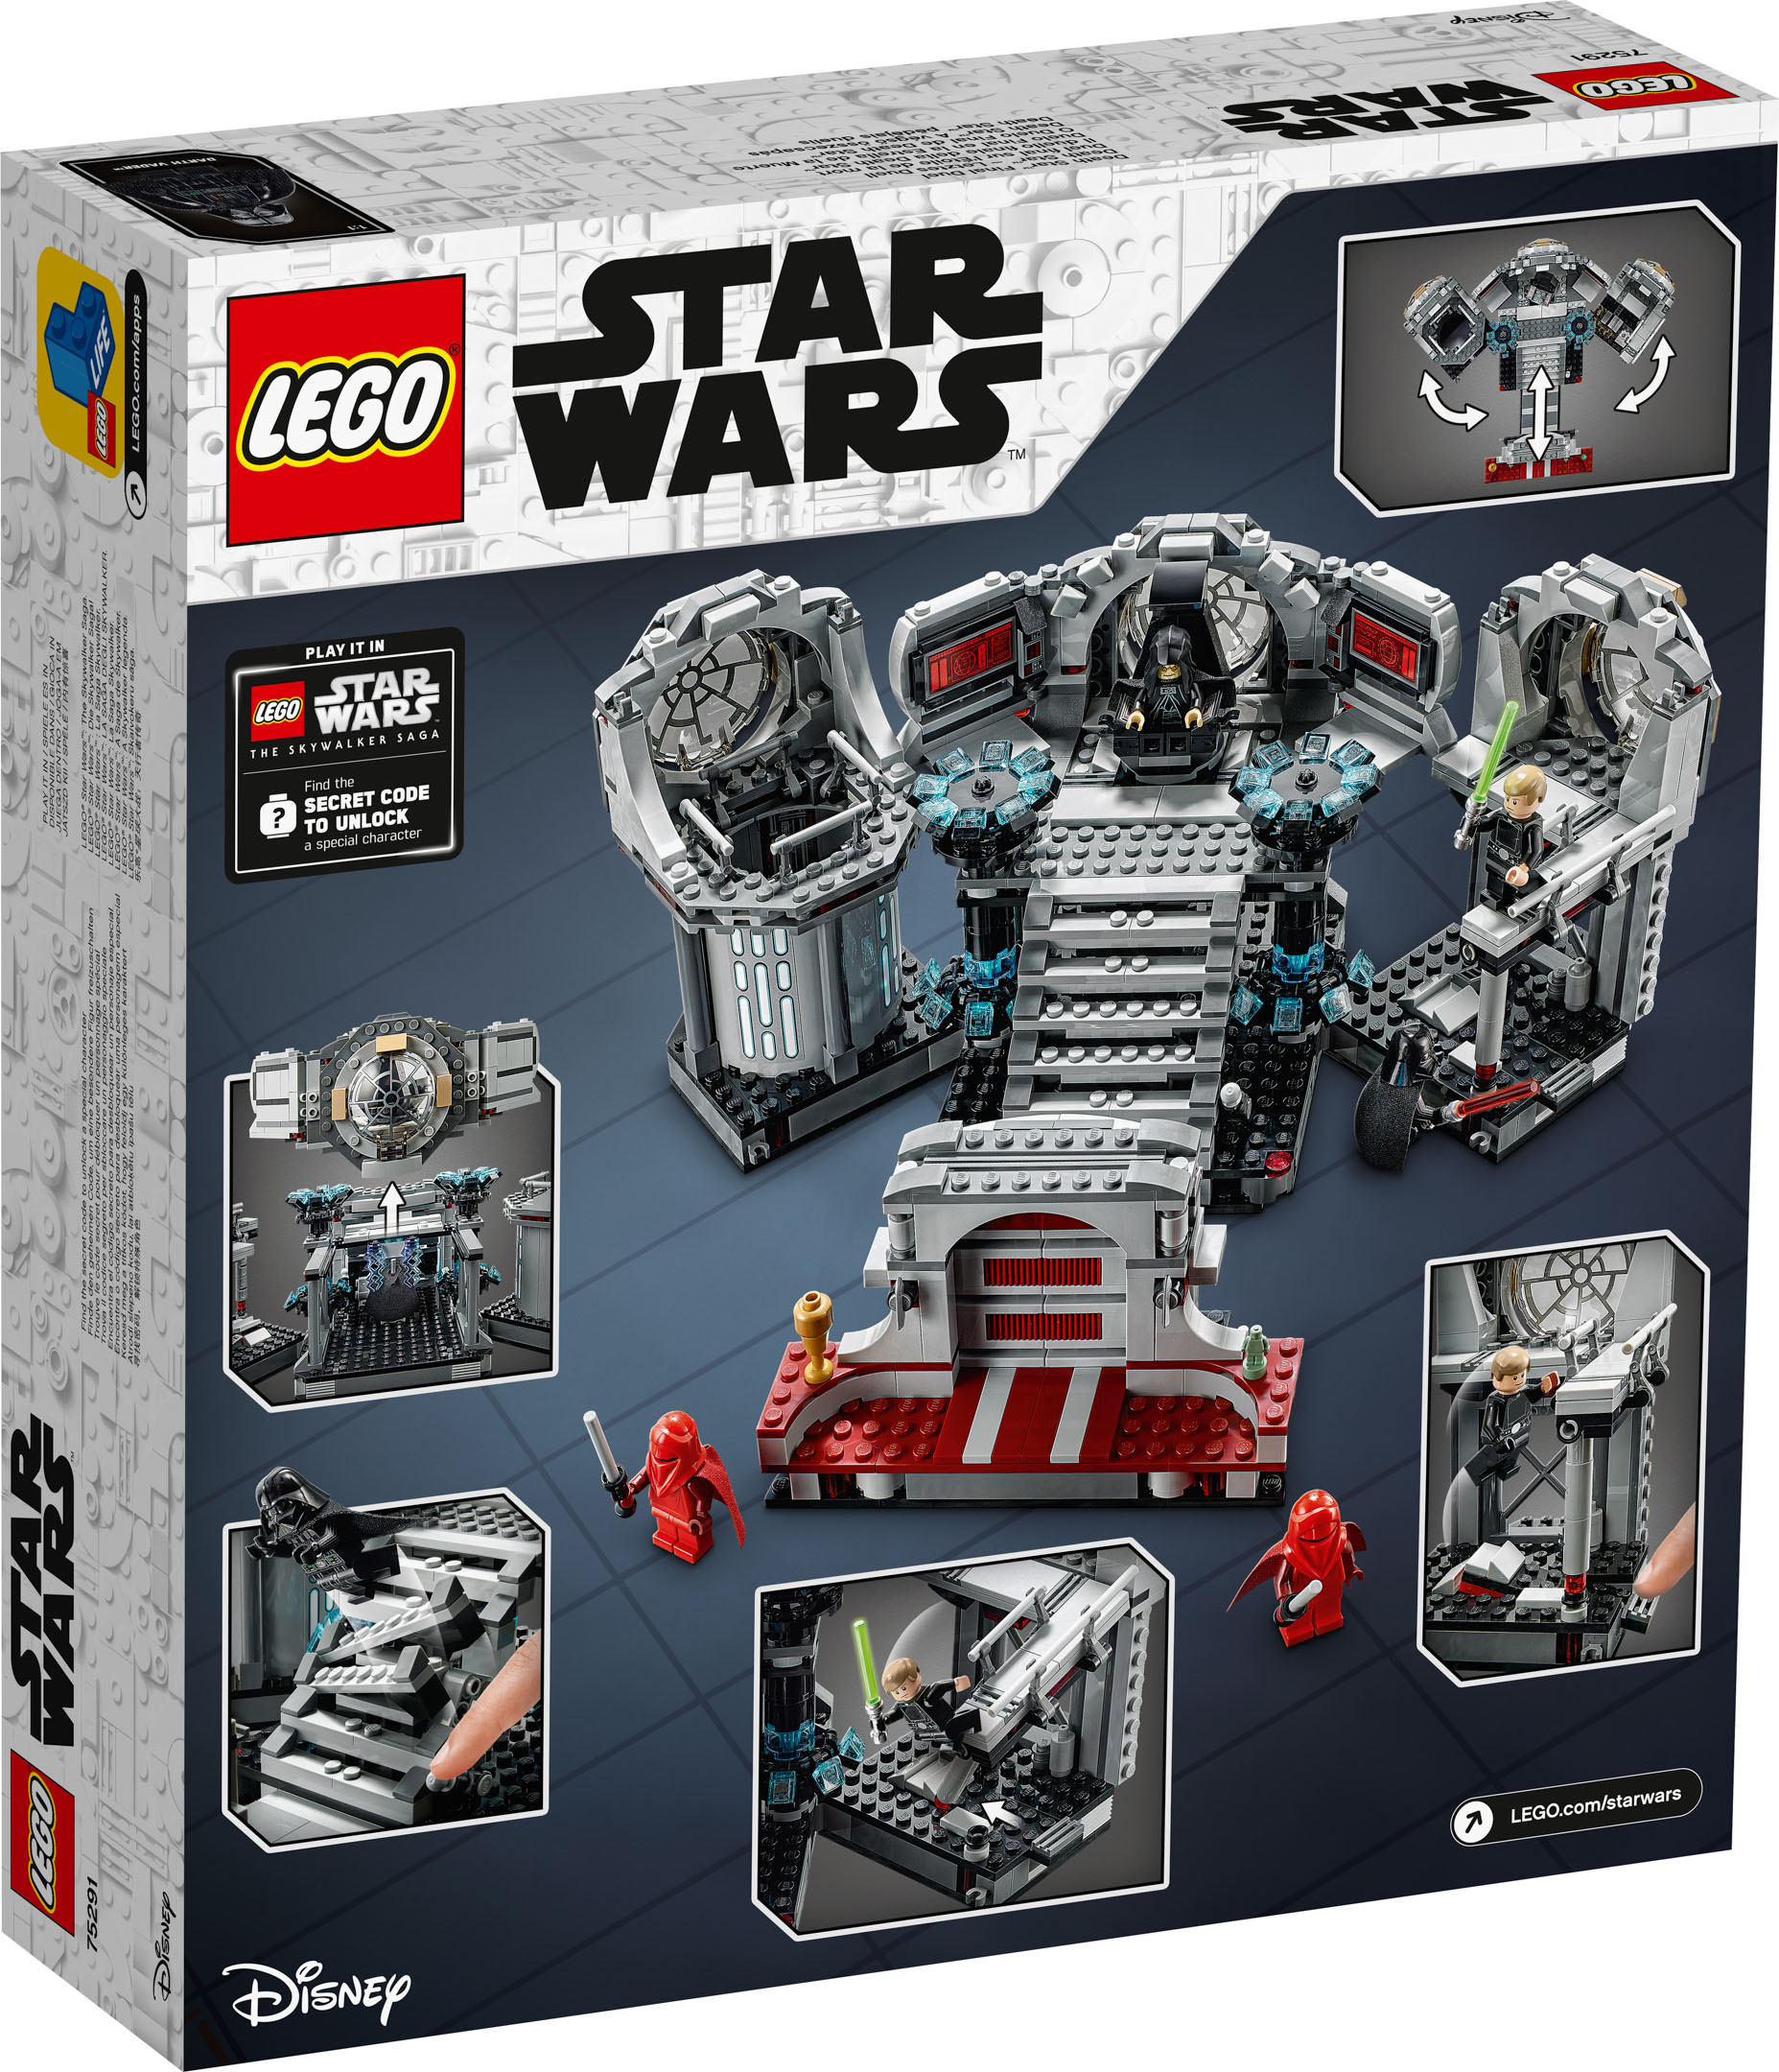 LEGO-Star-Wars-75291-Death-Star-Final-Duel-HFXEX-5